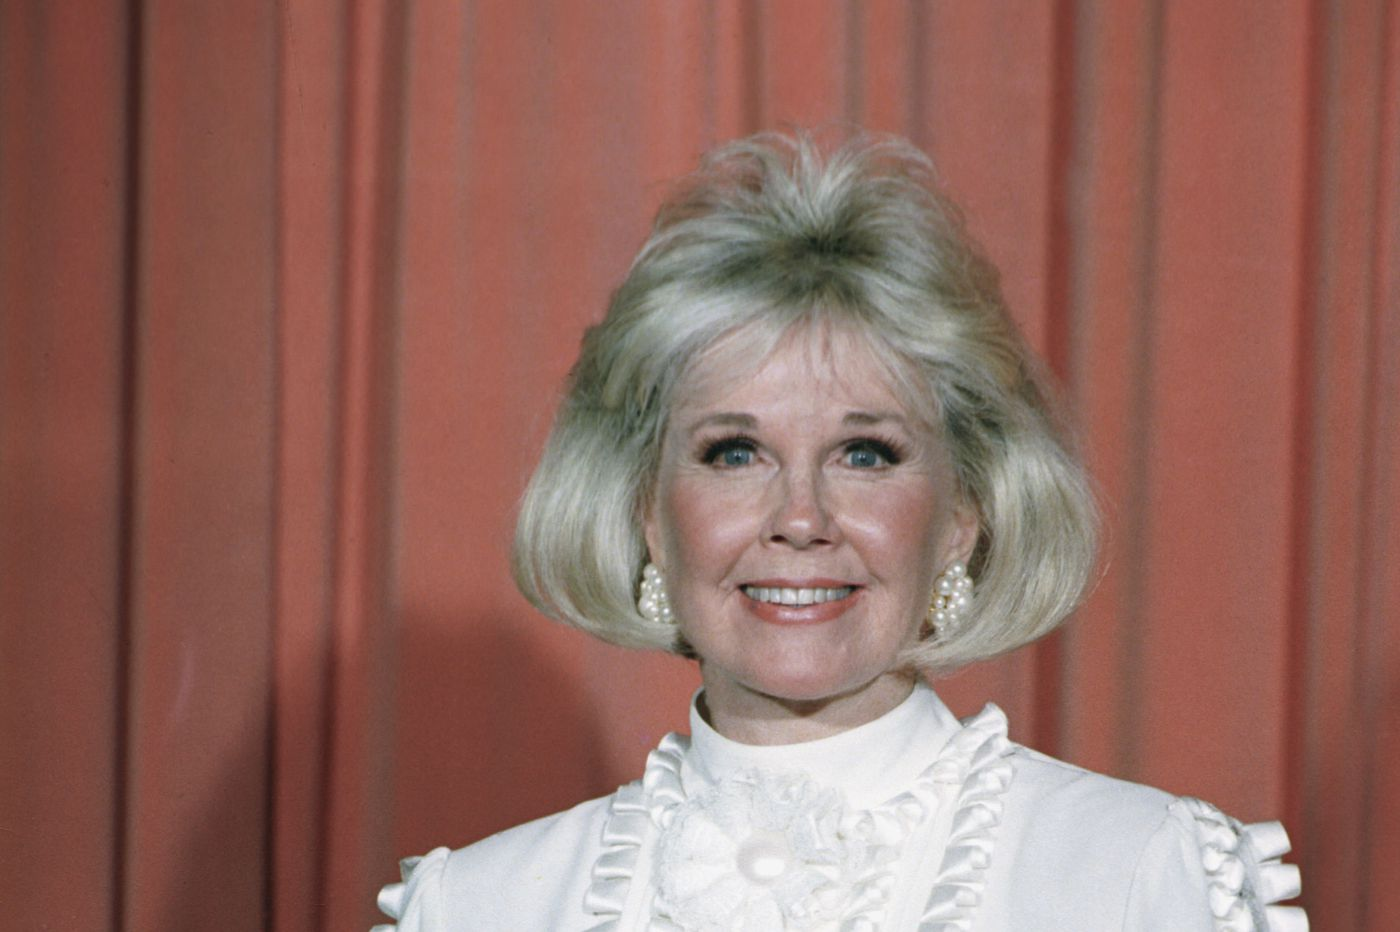 Actress Doris Day dies at 97